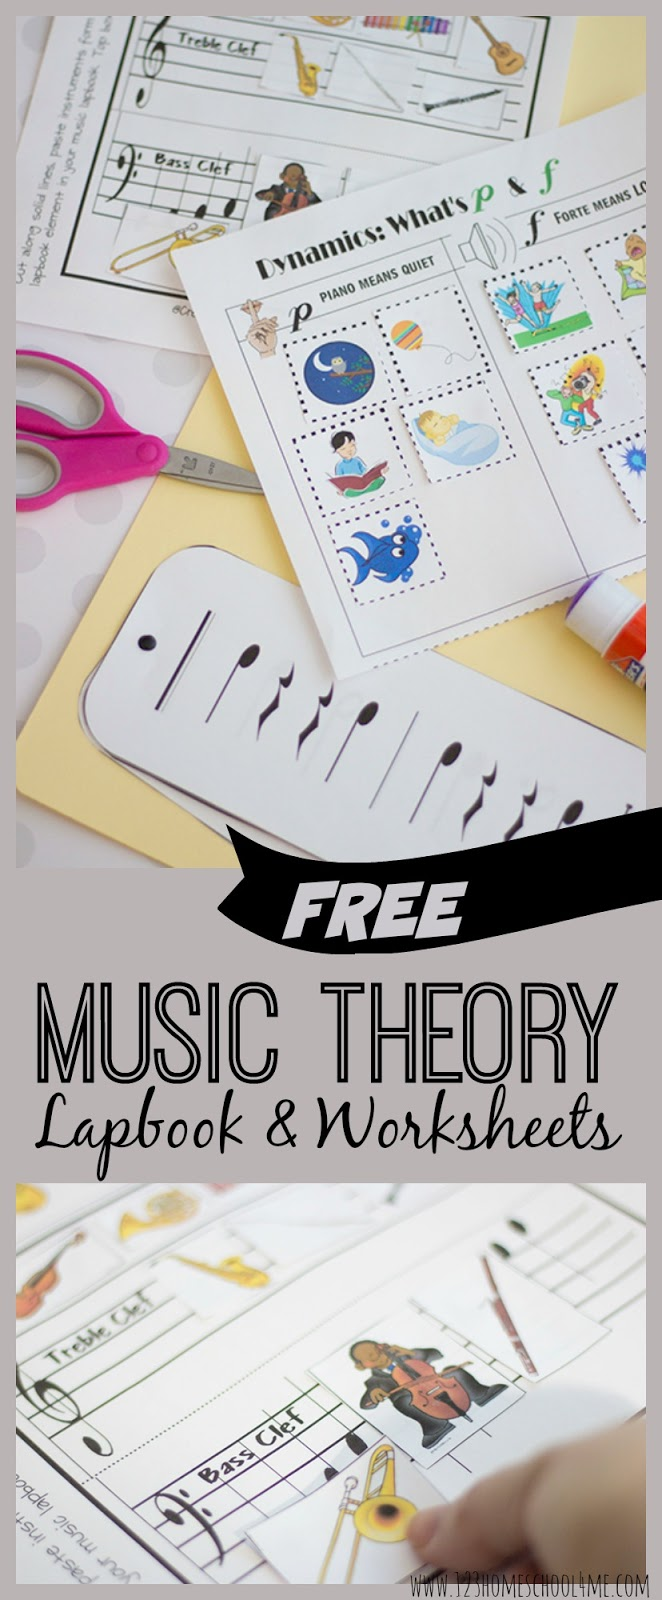 Workbooks understatement worksheets : FREE Music Theory Worksheets & Resources